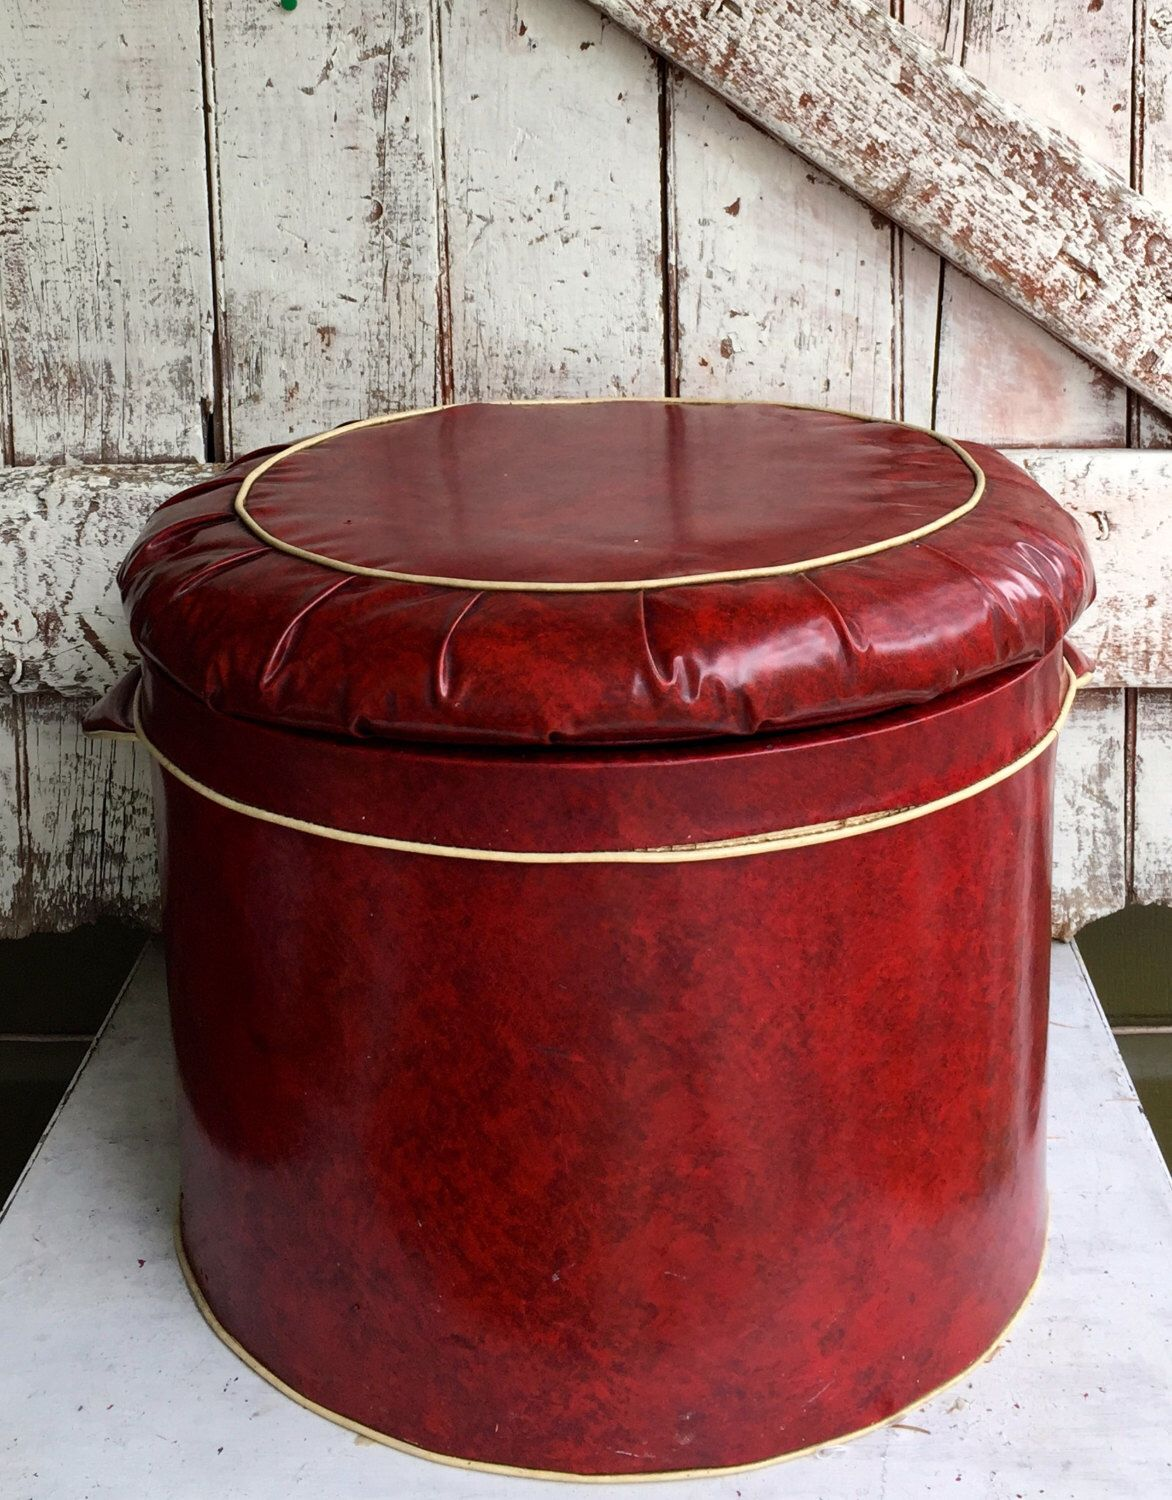 red vinyl round storage ottoman footstool hassock vintage mid century retro lid lifts off for. Black Bedroom Furniture Sets. Home Design Ideas